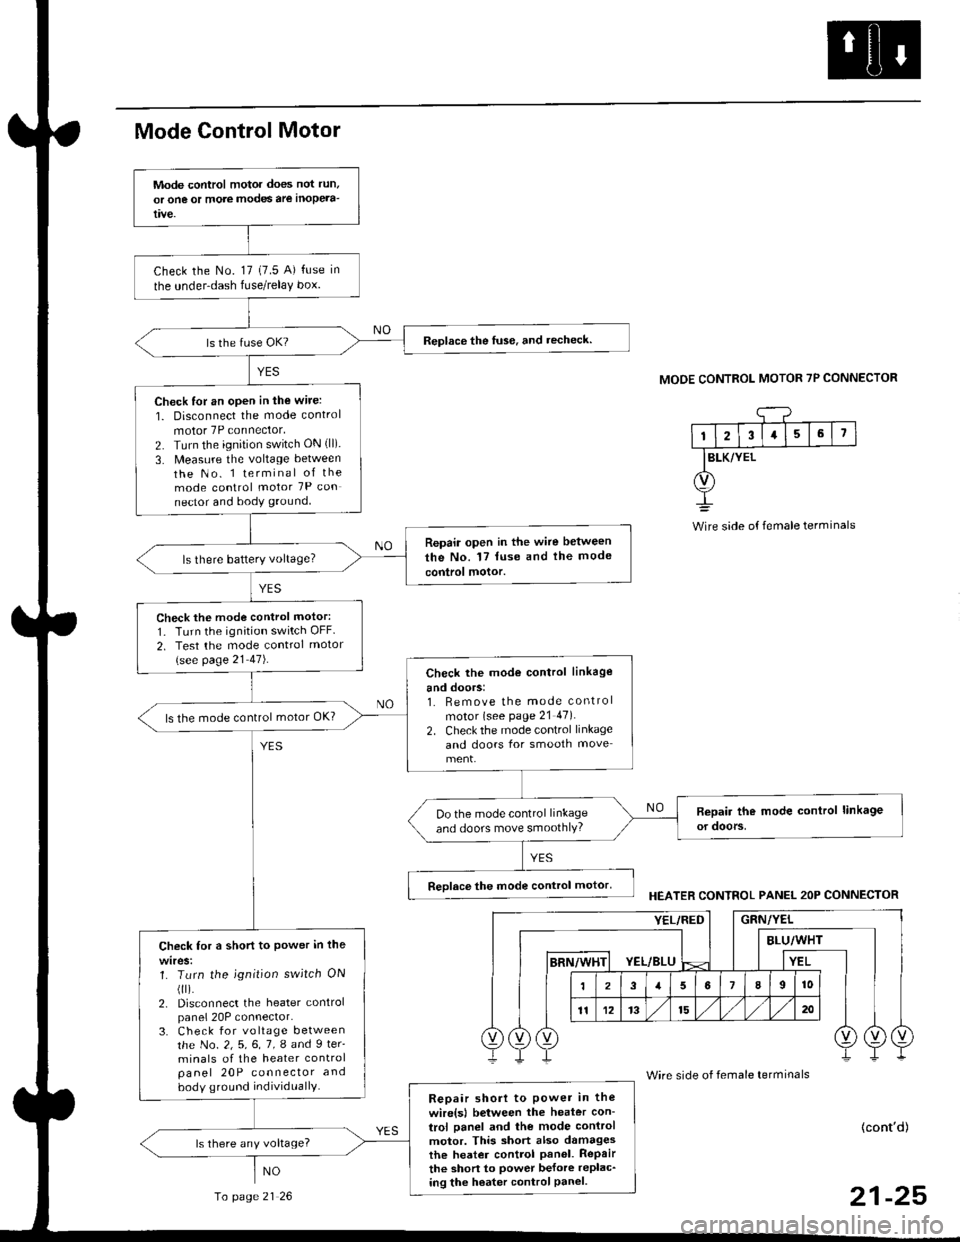 2004 honda odyssey ignition wiring diagram refrigerator 1997 fuse box great installation of discconnecting wire 45 2006